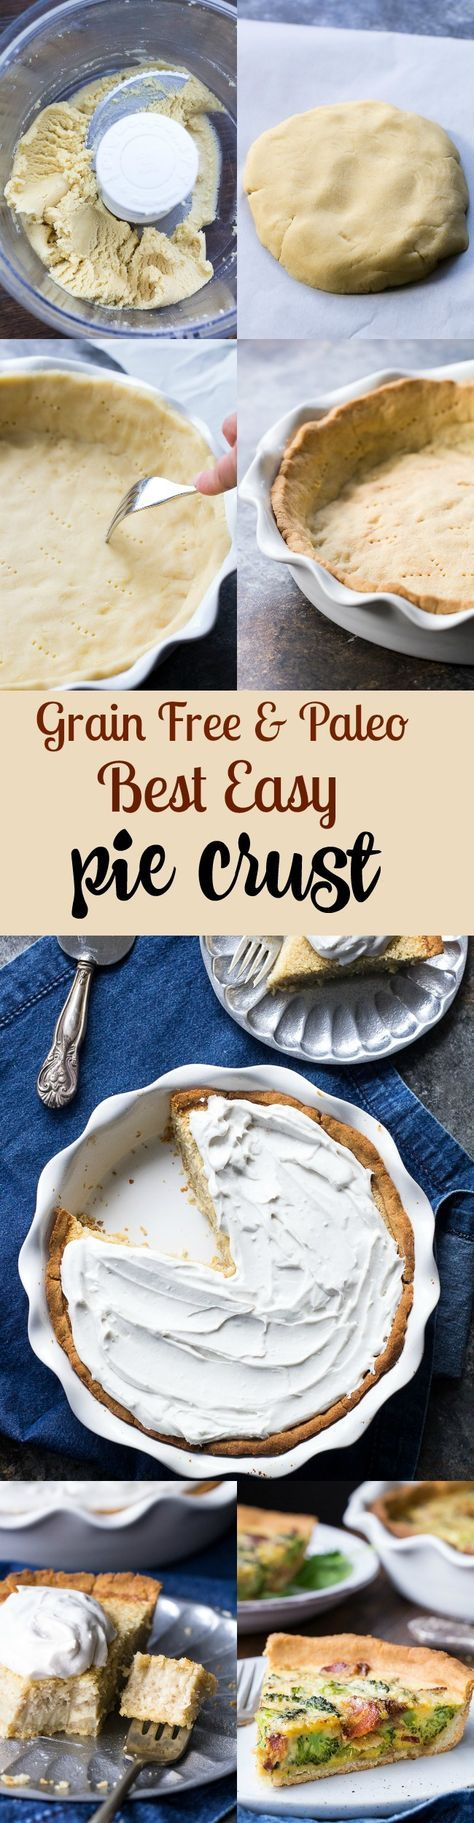 The best easy paleo pie crust for your favorite dessert pies or savory pies and quiches! The dough comes together in minutes in a blender and is gluten free, grain free, dairy free, family approved, and very versatile.